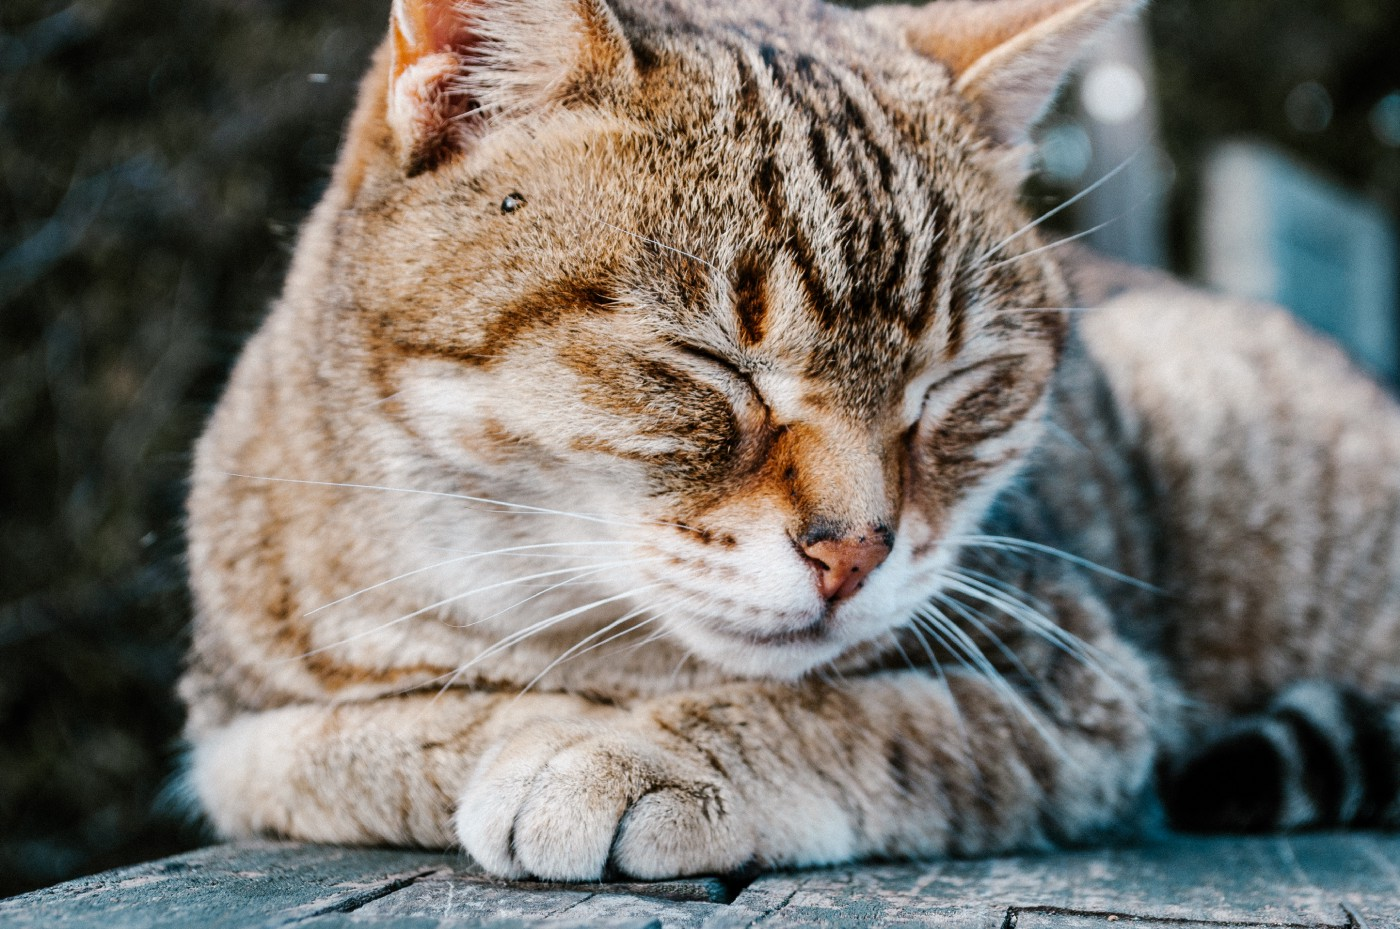 Cat resting with its eyes closed